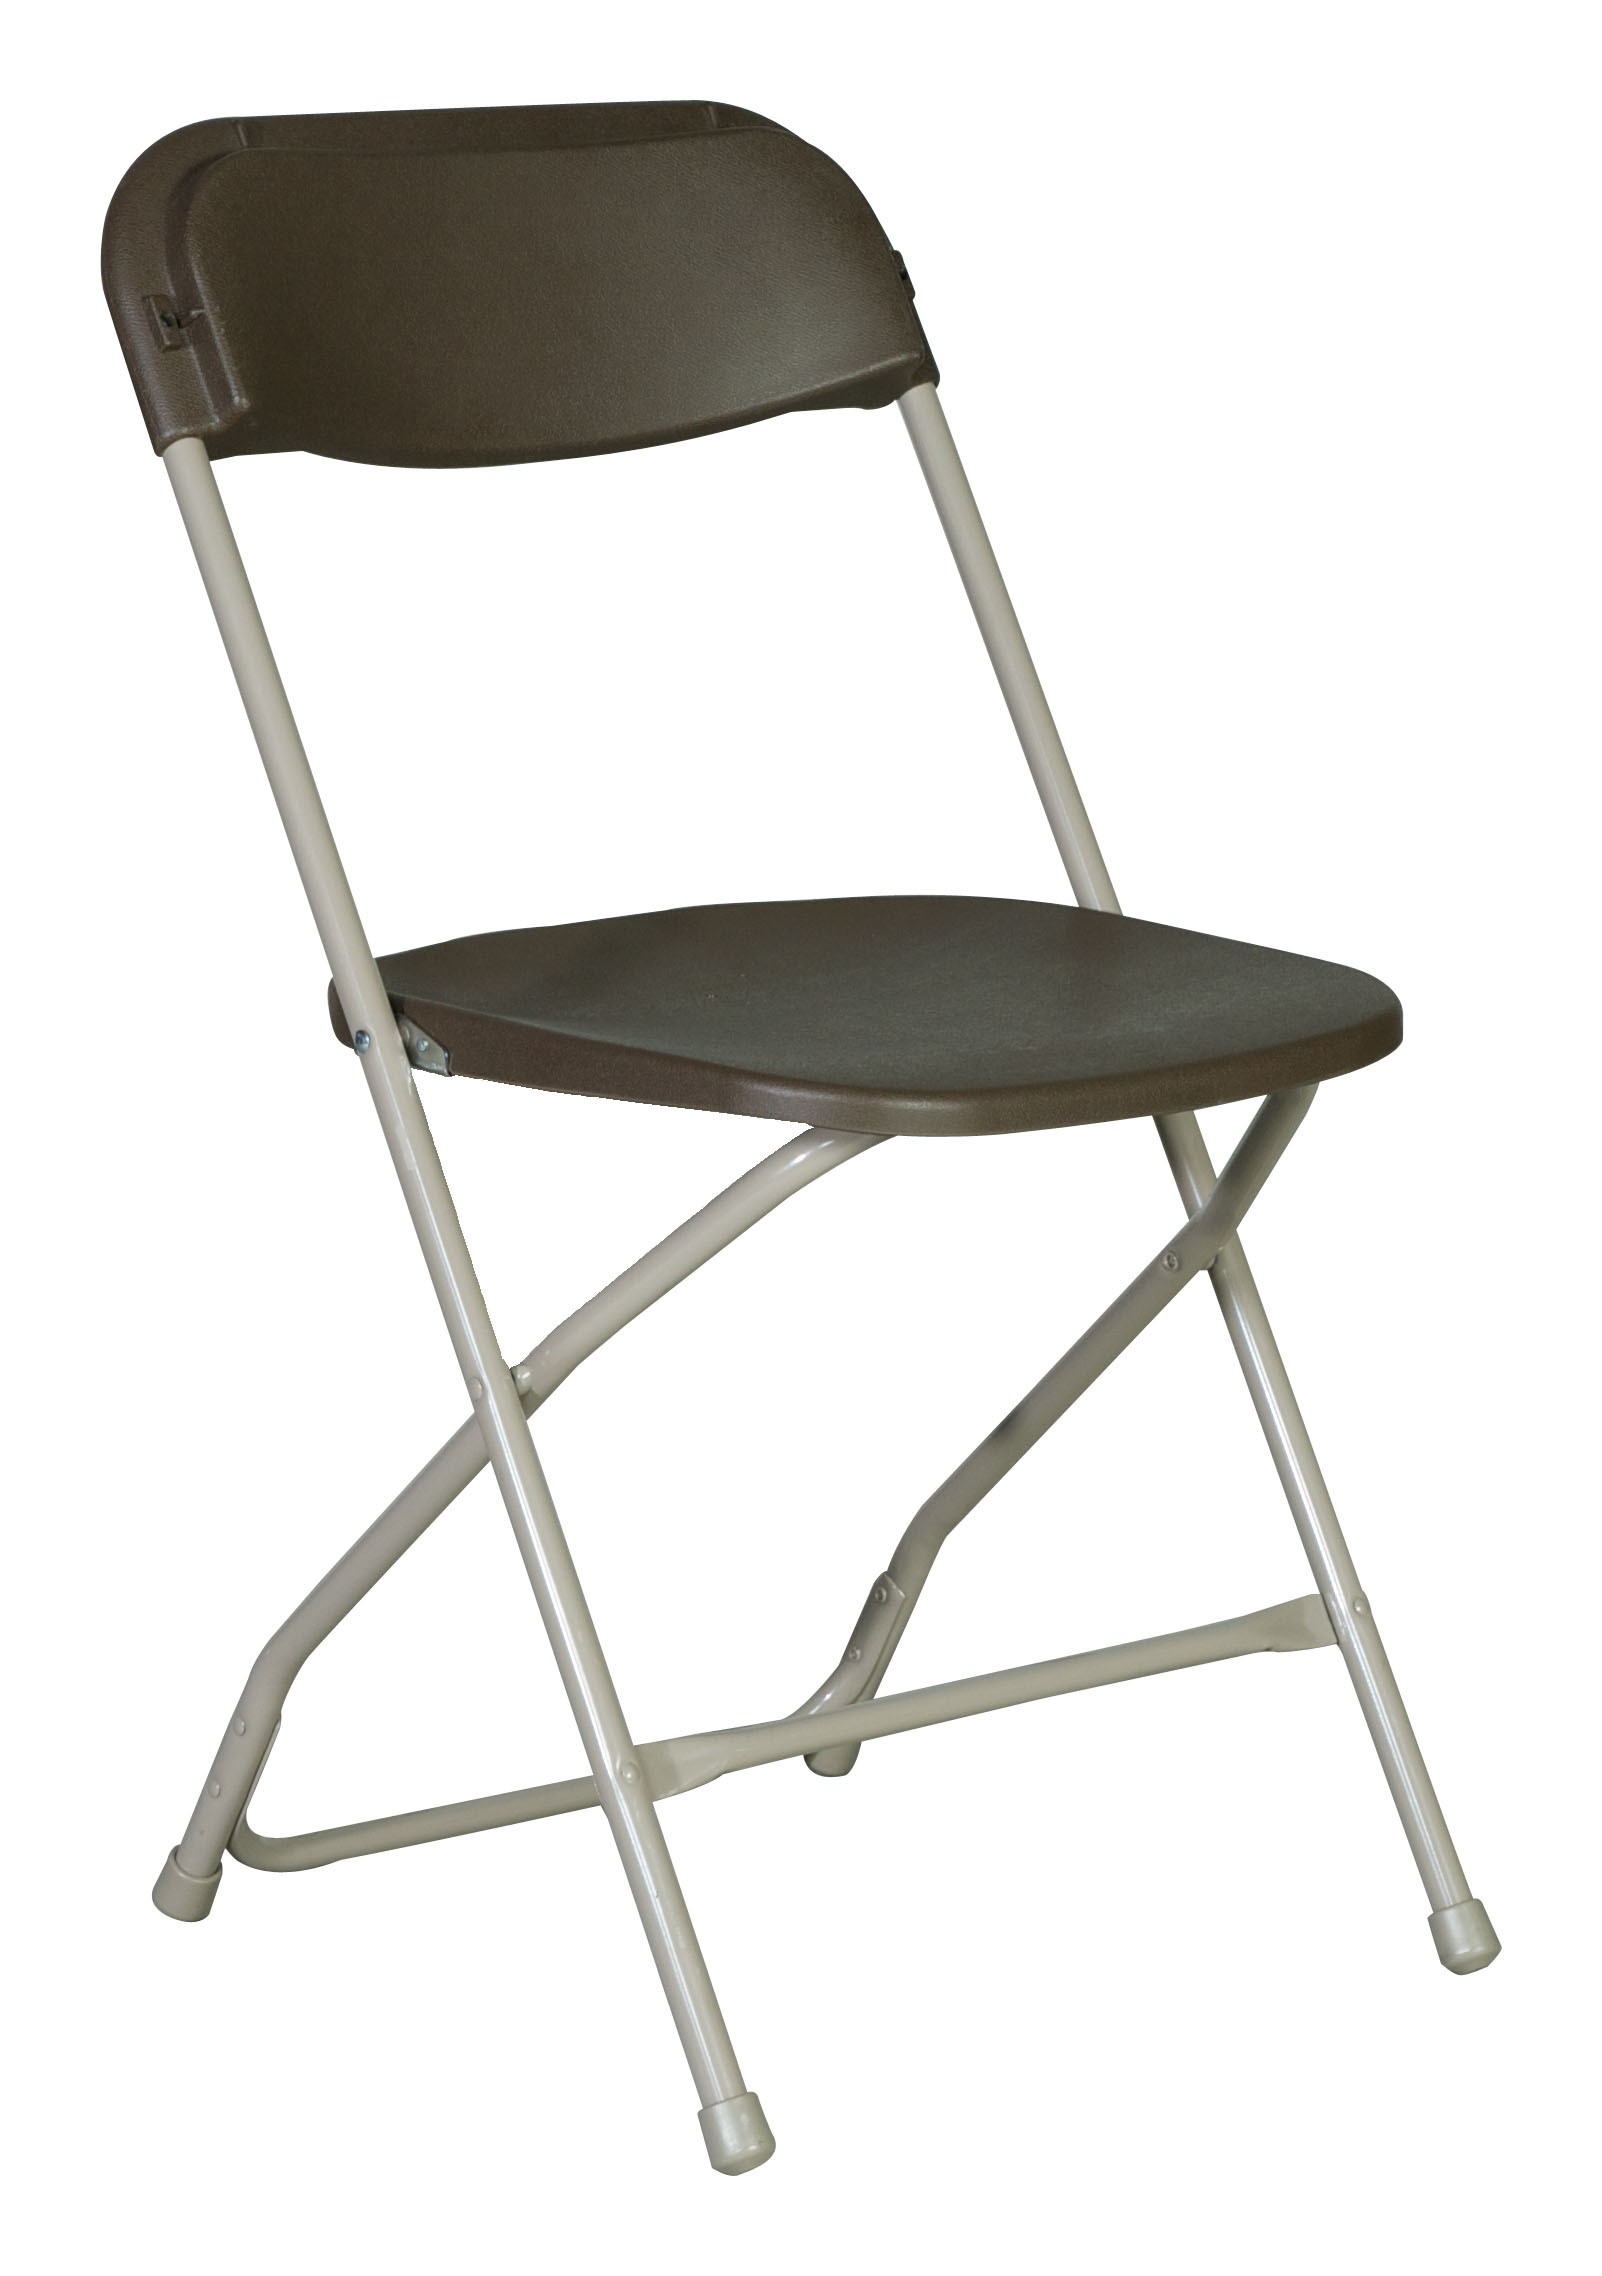 Brown Plastic Folding Chair A Grand Affair Rentals